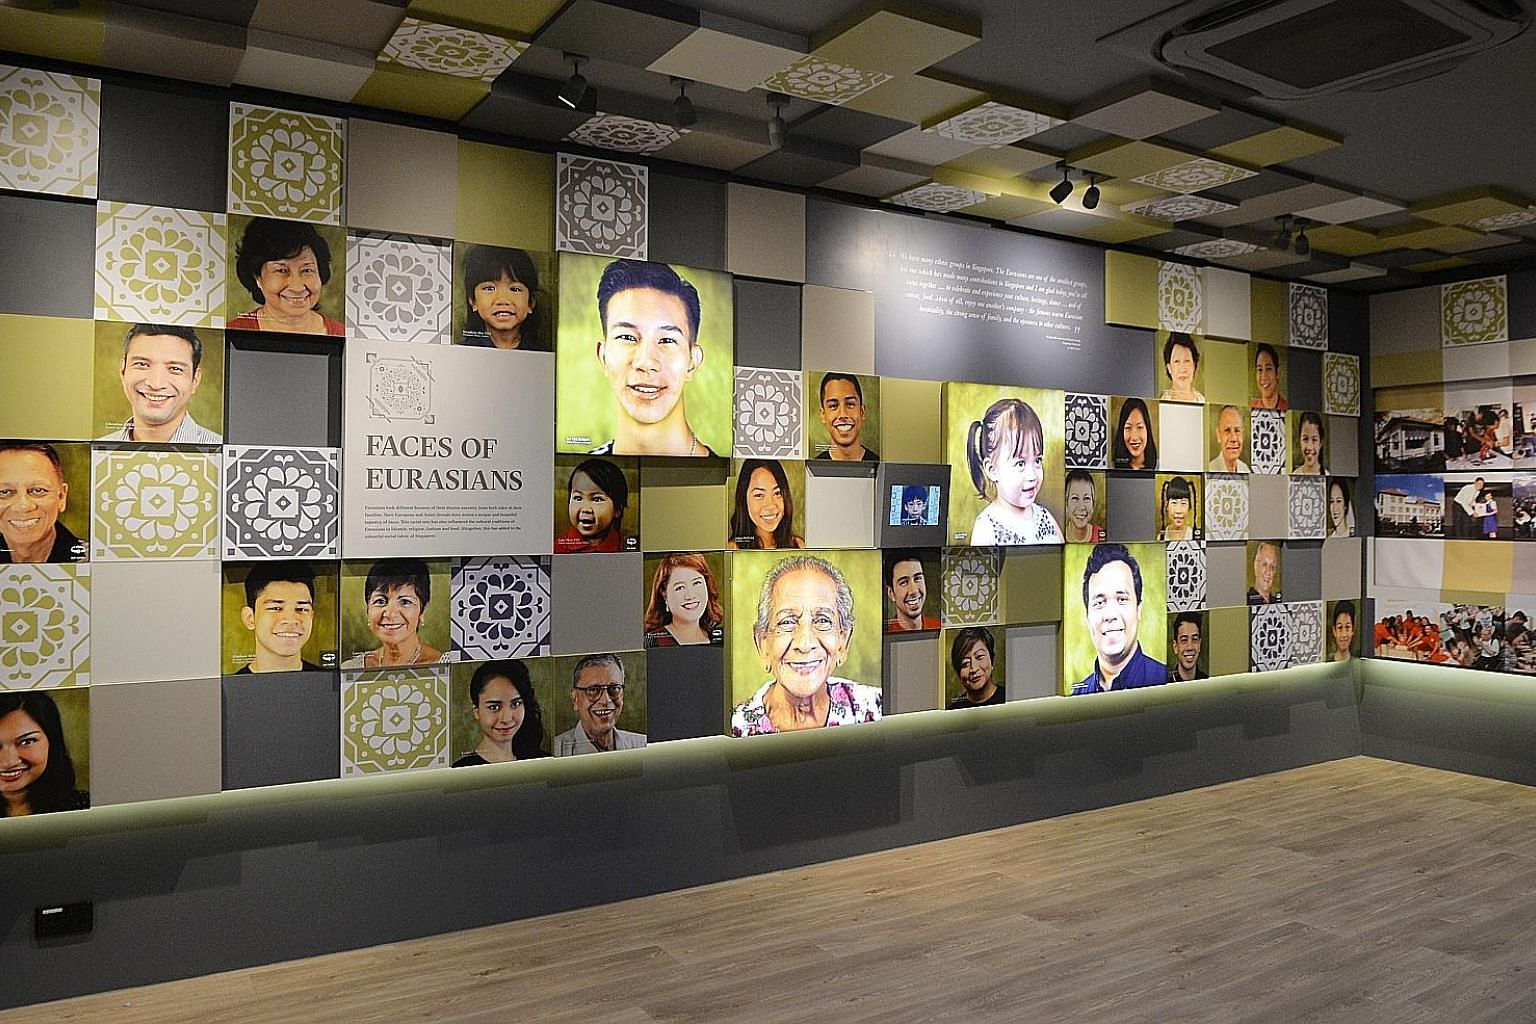 The new Eurasian Heritage Gallery, located at the Eurasian Association's headquarters in Ceylon Road, tells the community's story with 600 photos, artefacts, videos and audio recordings contributed by Eurasians in Singapore. Entry is free for Singapo